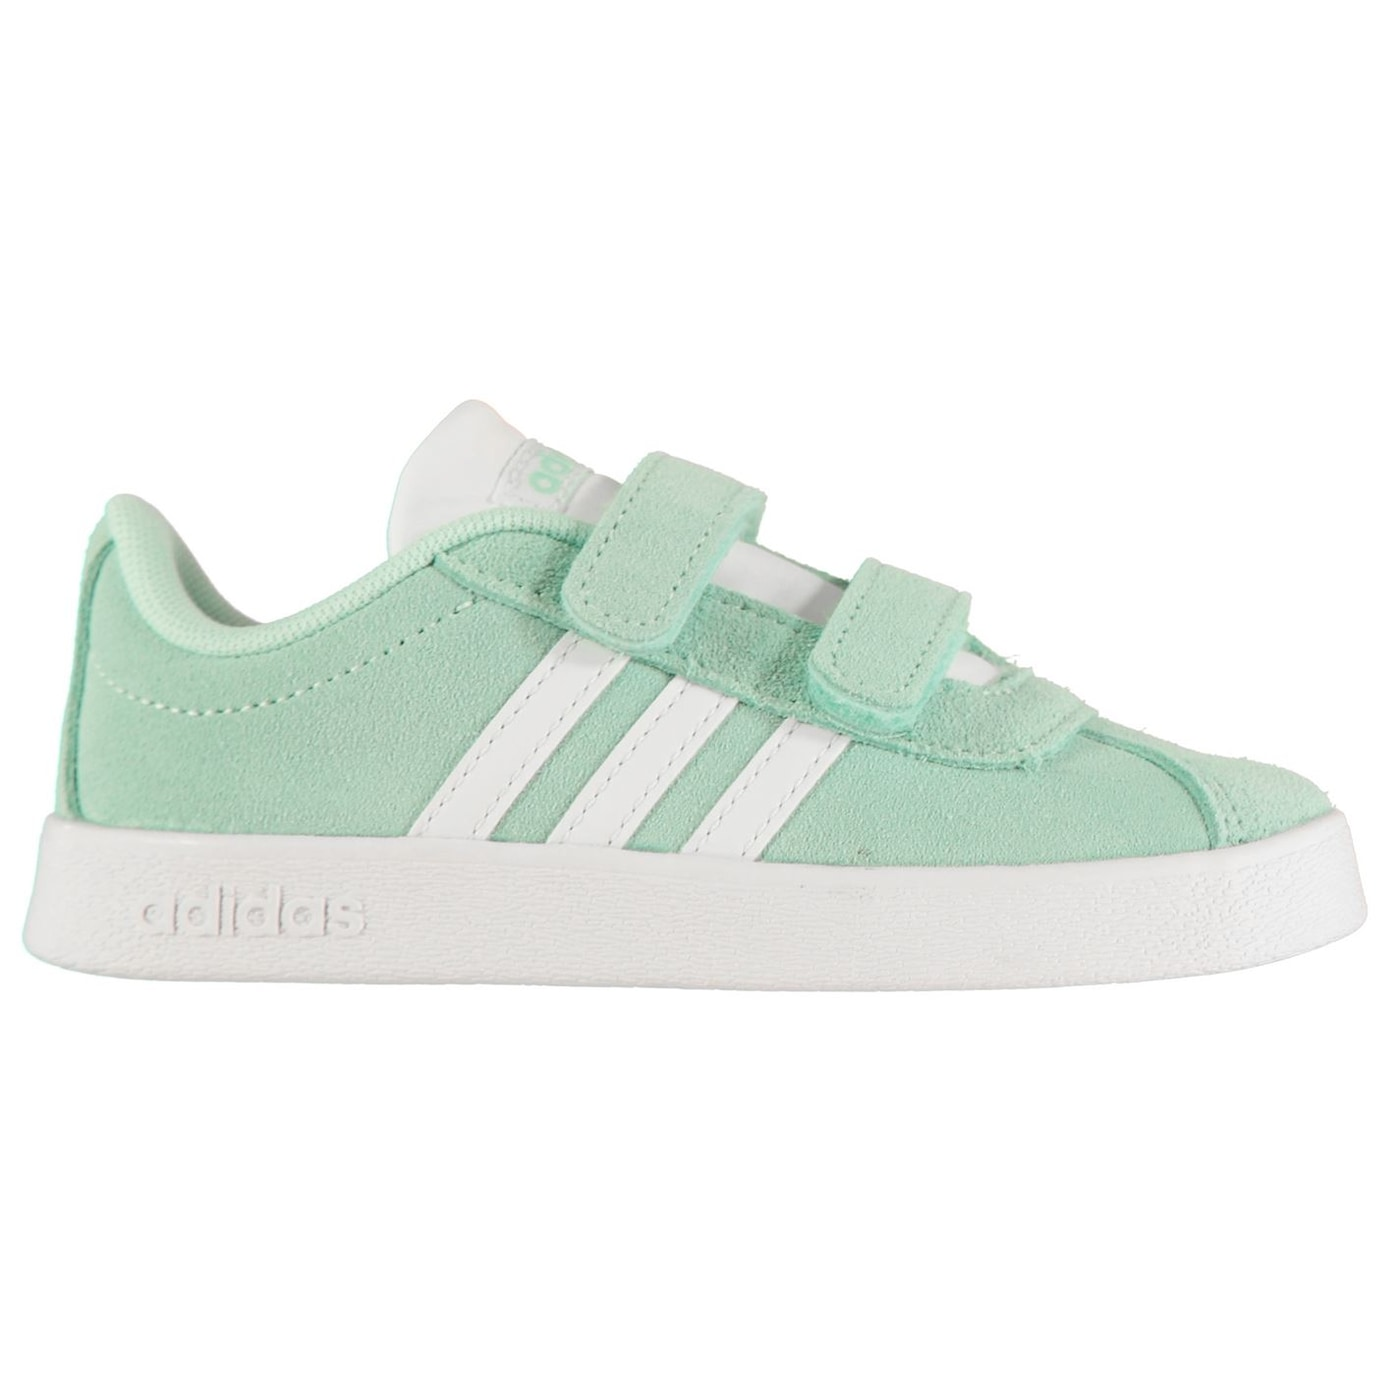 Adidas VL Court Suede Infant Girls Trainers